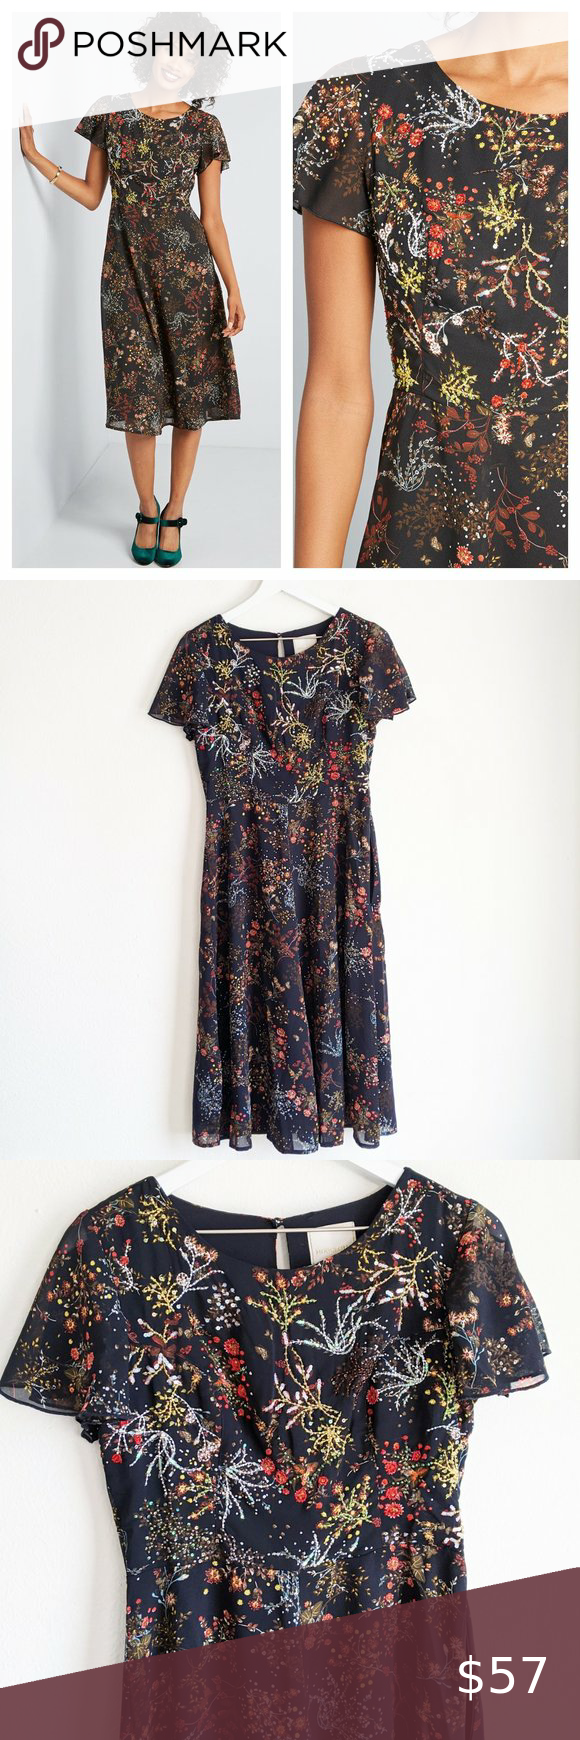 Modcloth Embellished to Perfection Midi Dress